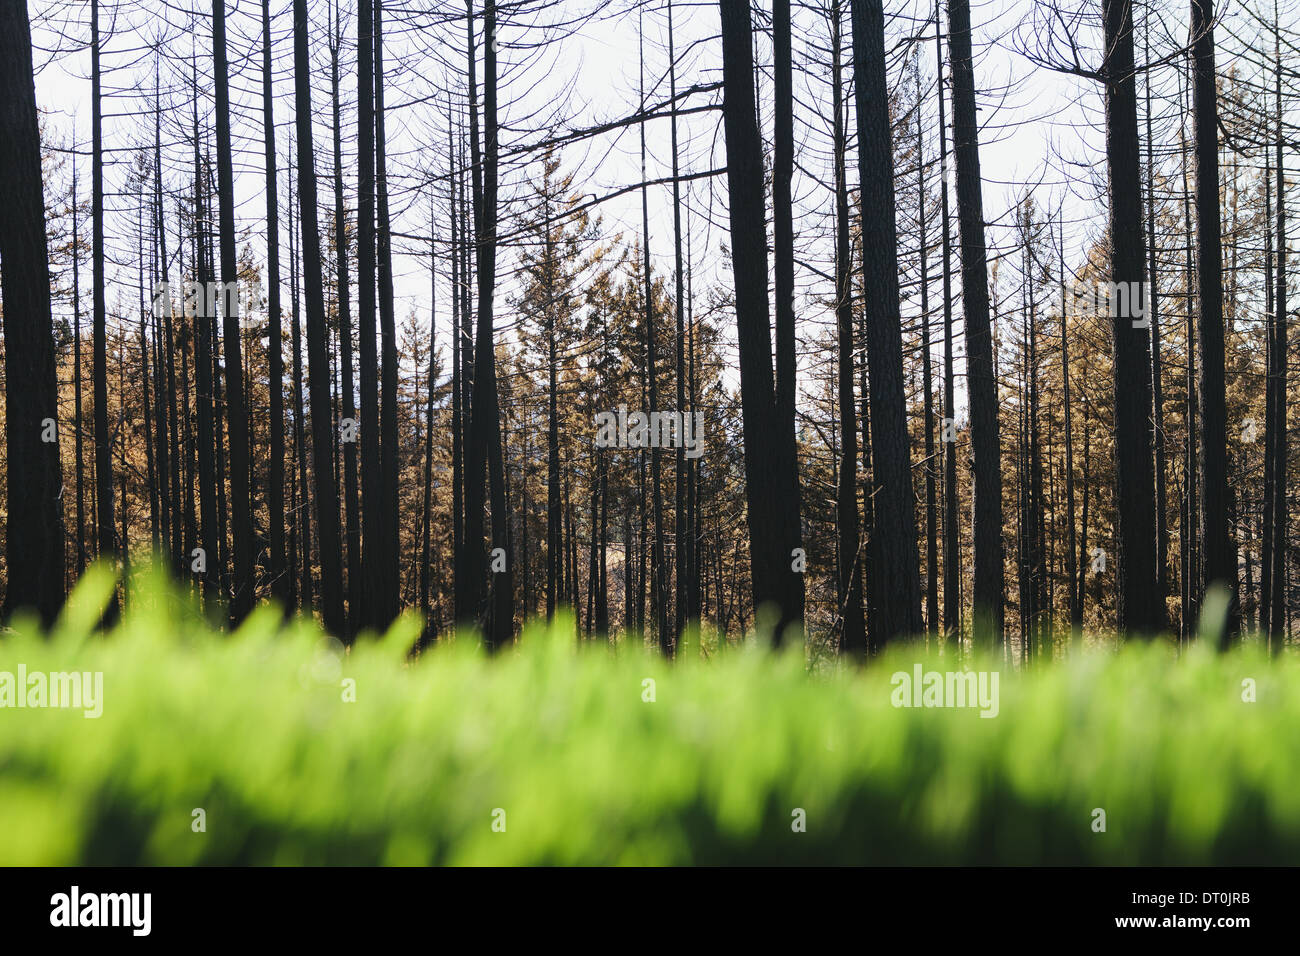 Washington state USA Lush green grass recently burned forest - Stock Image